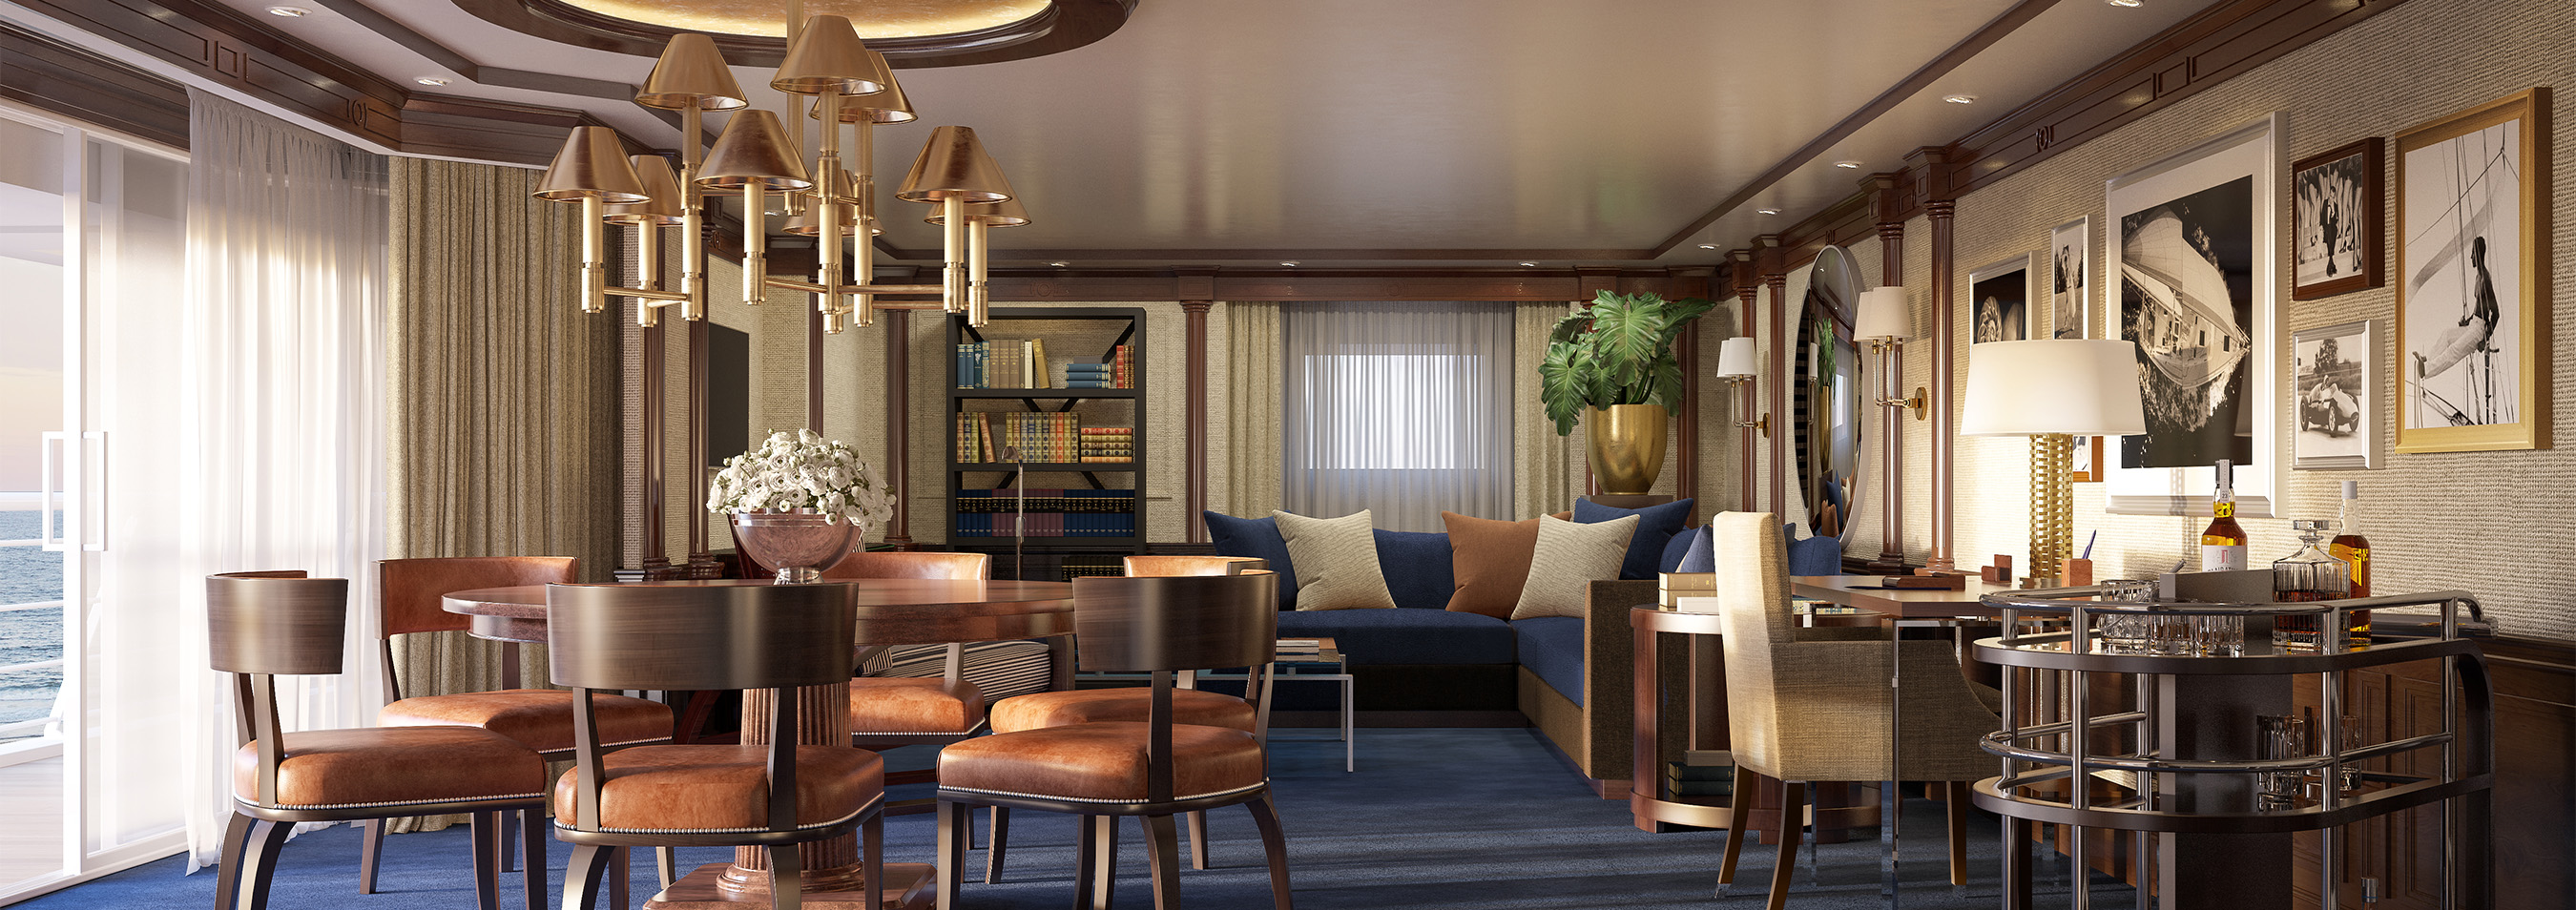 Living area of an Oceania Cruises ship